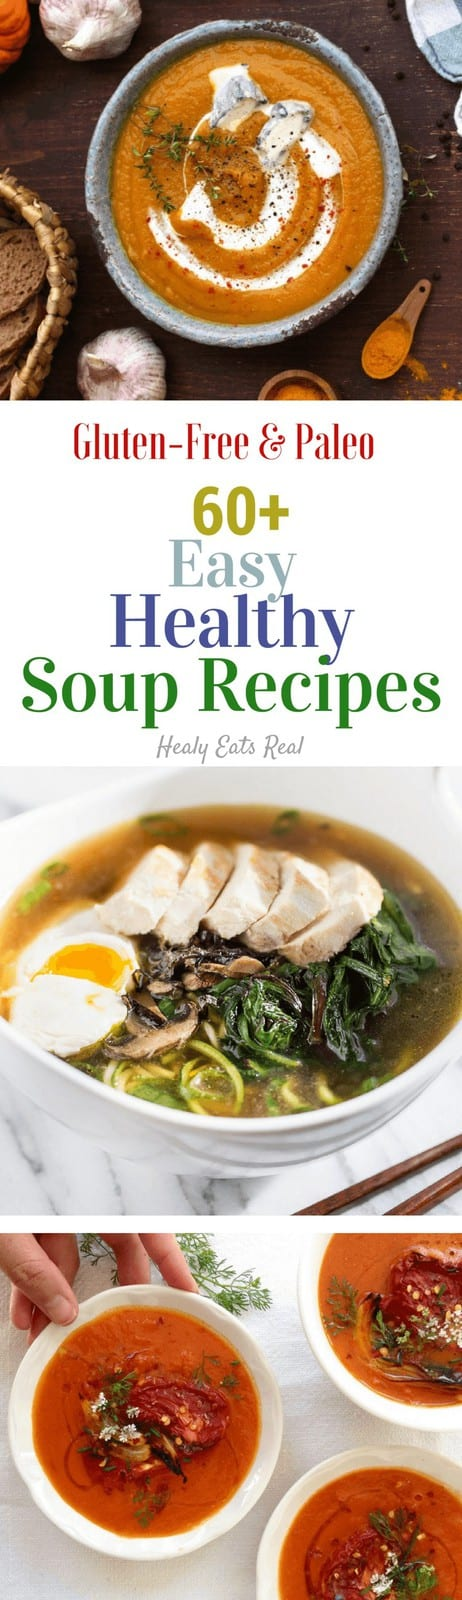 60+ Easy Healthy Paleo Soup Recipes - Some of my favorite healthy meals are simple paleo soup recipes. They are hearty, filling, delicious and usually pretty easy to put together. #soup #paleo #fallrecipes #comfortfood #healyeatsreal